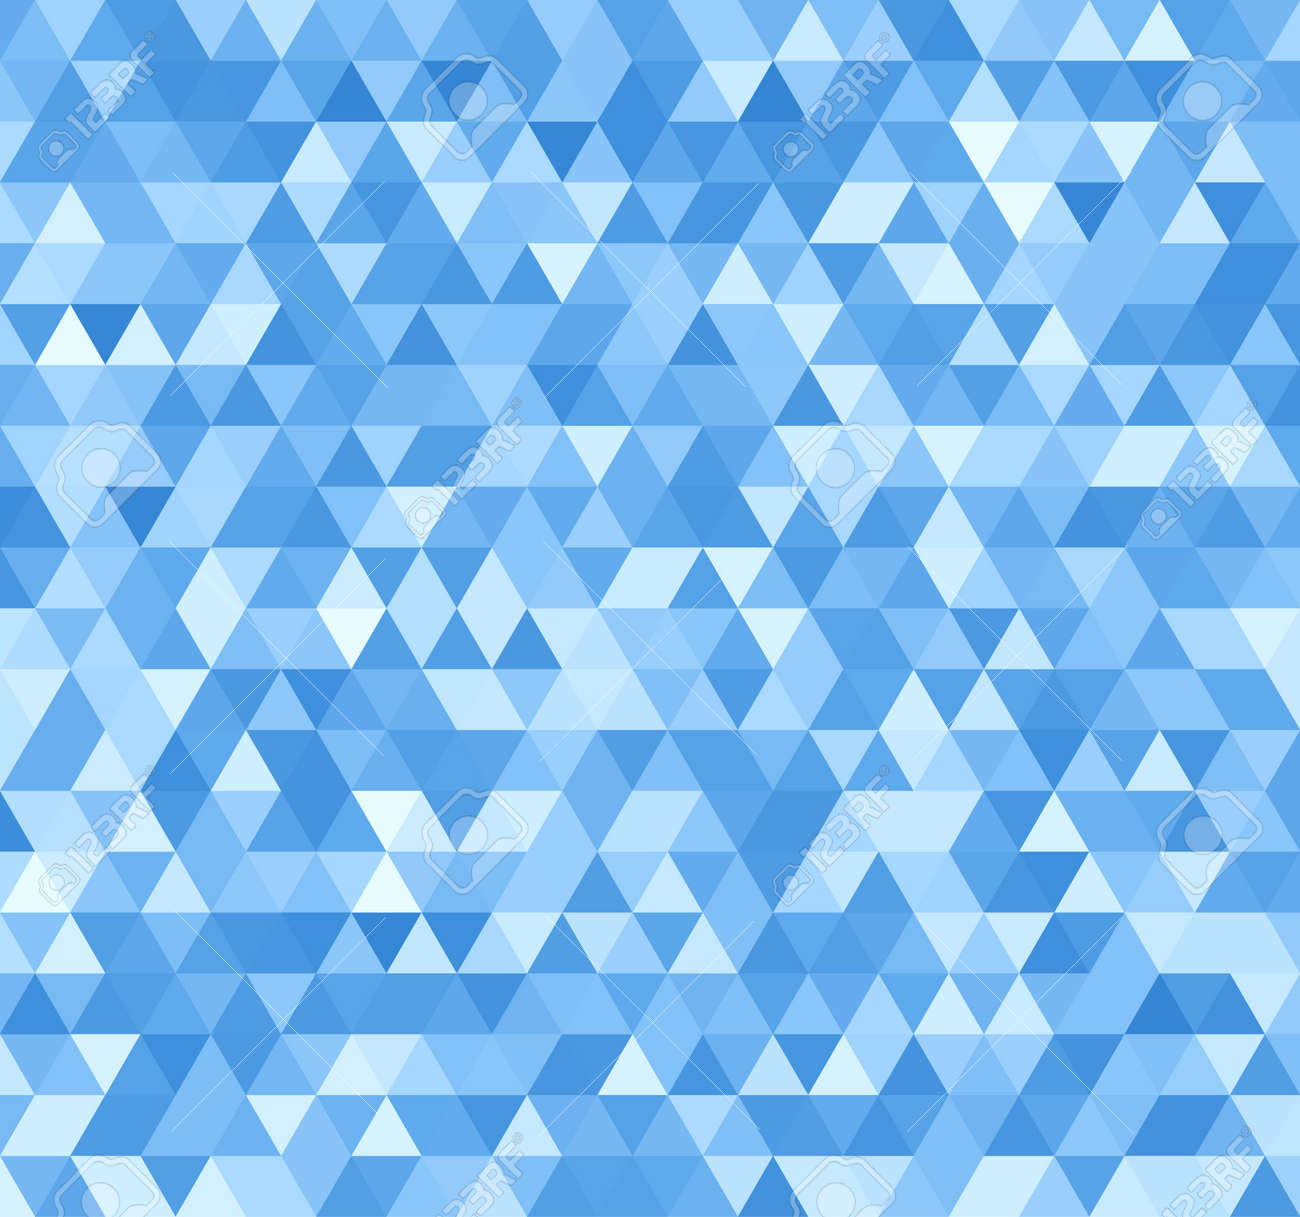 Blue Seamless Triangle Abstract Background  Vector Pattern of